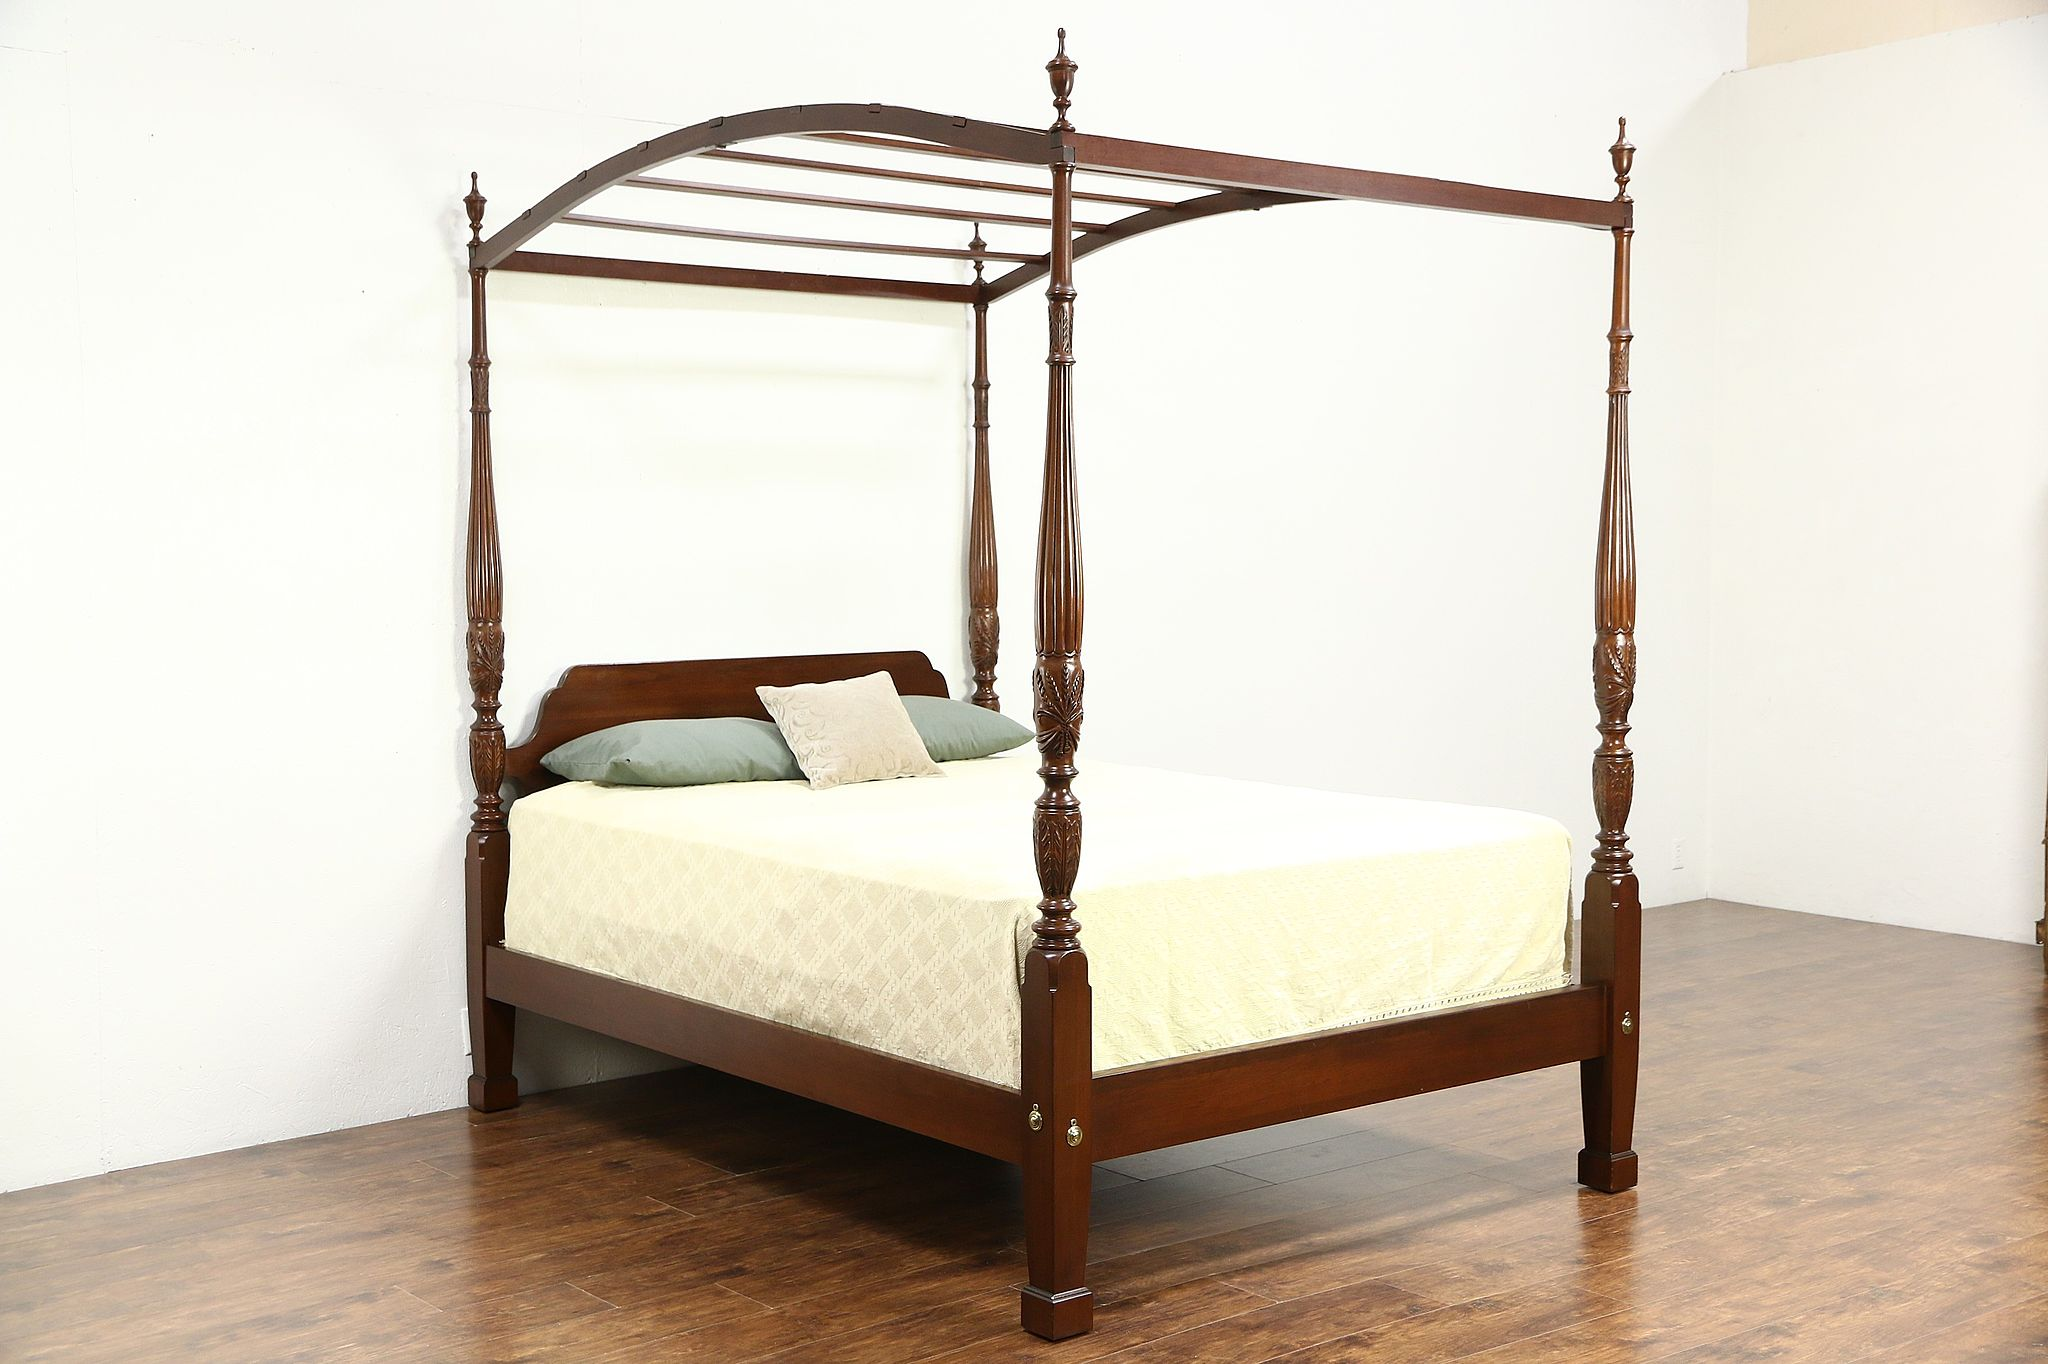 Four Poster Queen Size Bed Sold Ethan Allen Rice Plantation Four Poster Queen Size